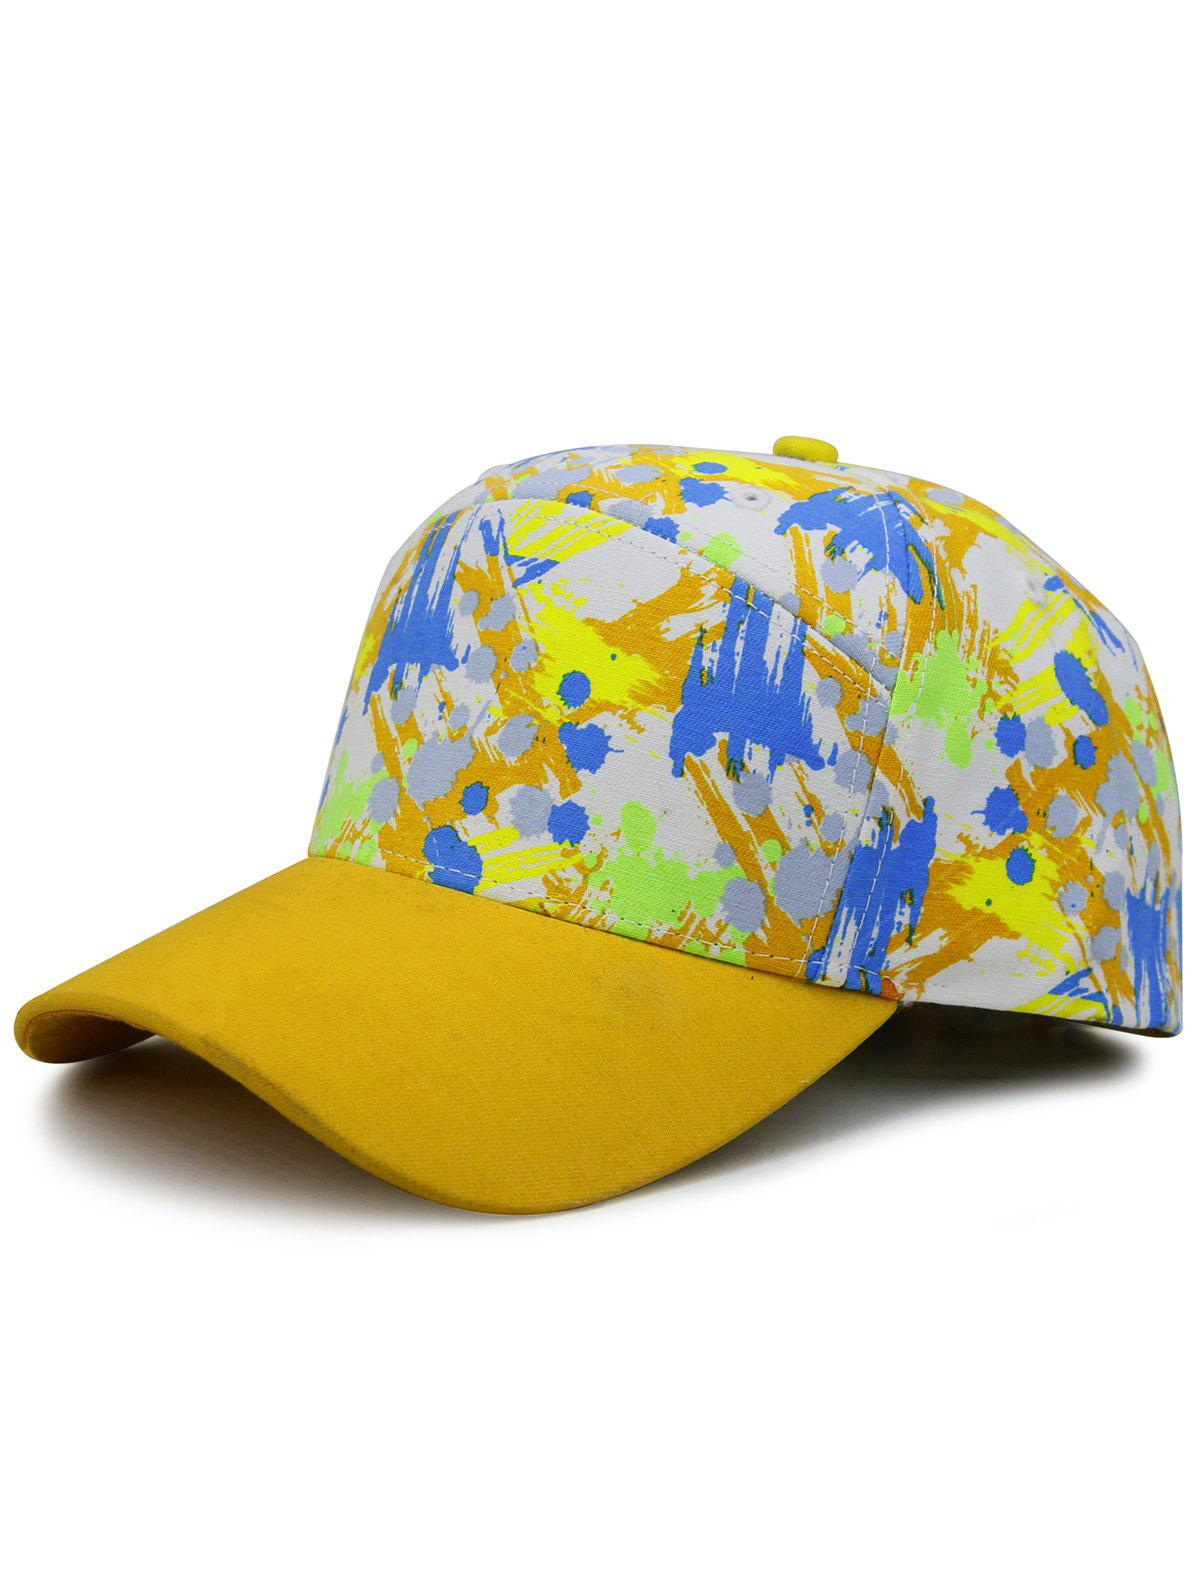 Buy Unique Painting Pattern Adjustable Snapback Hat